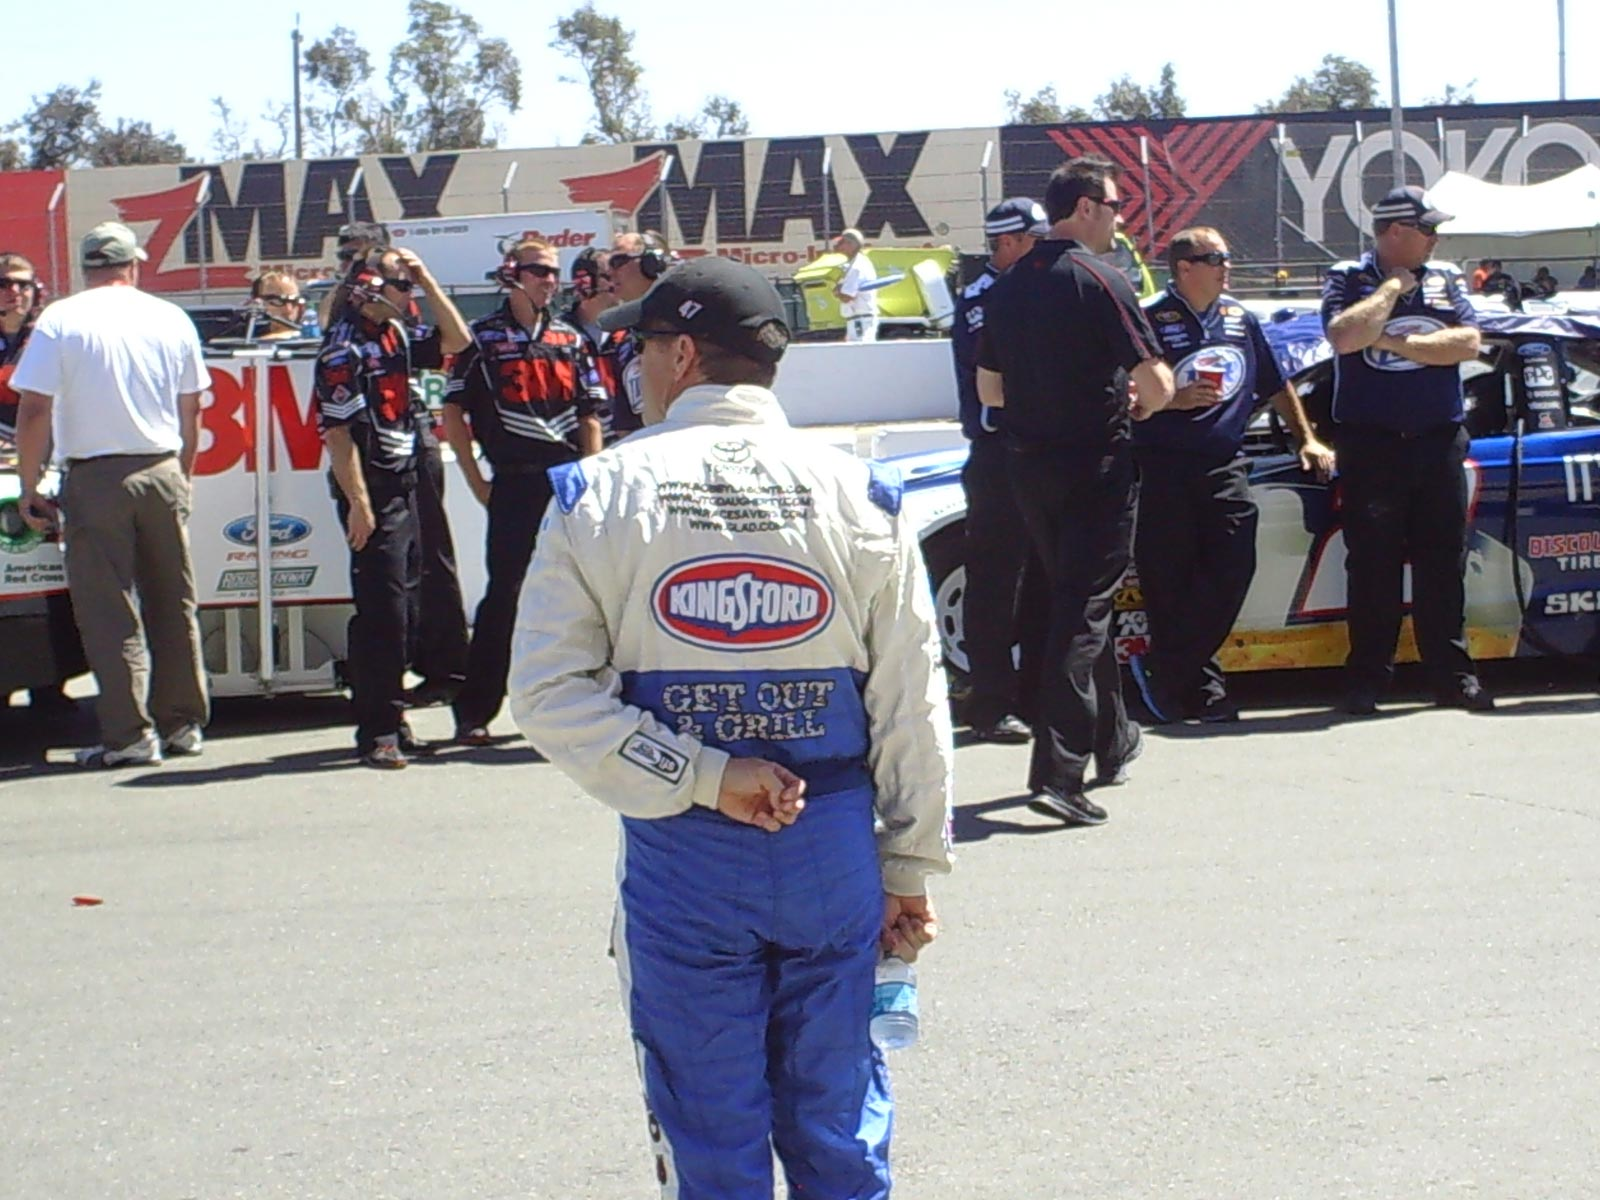 sonoma-saturday-bobby-labonte